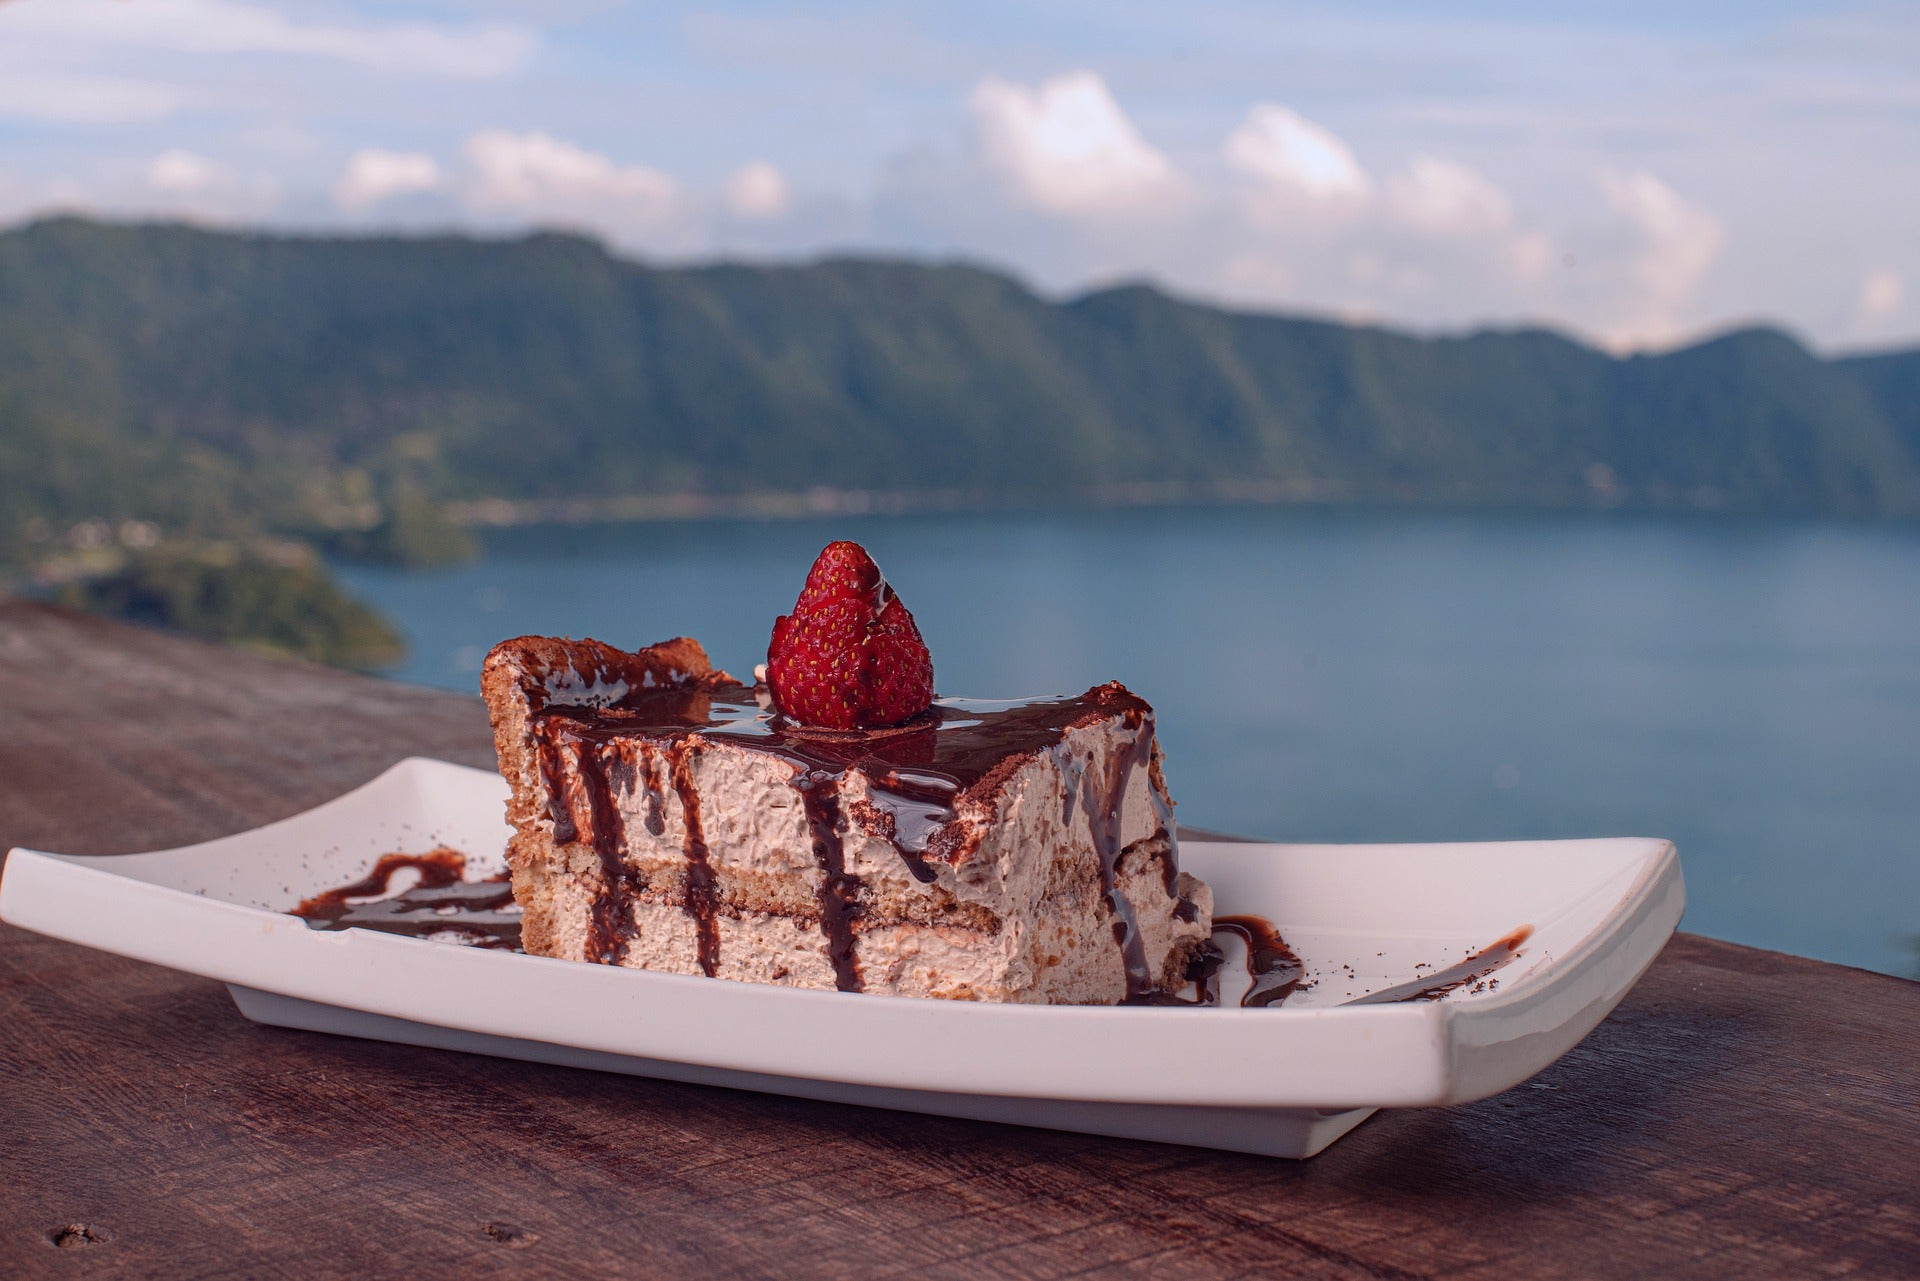 TT Strange Times - A Staycation Summer - A tiramisu with a view... Or just have the tiramisu at home if a view isn't available.